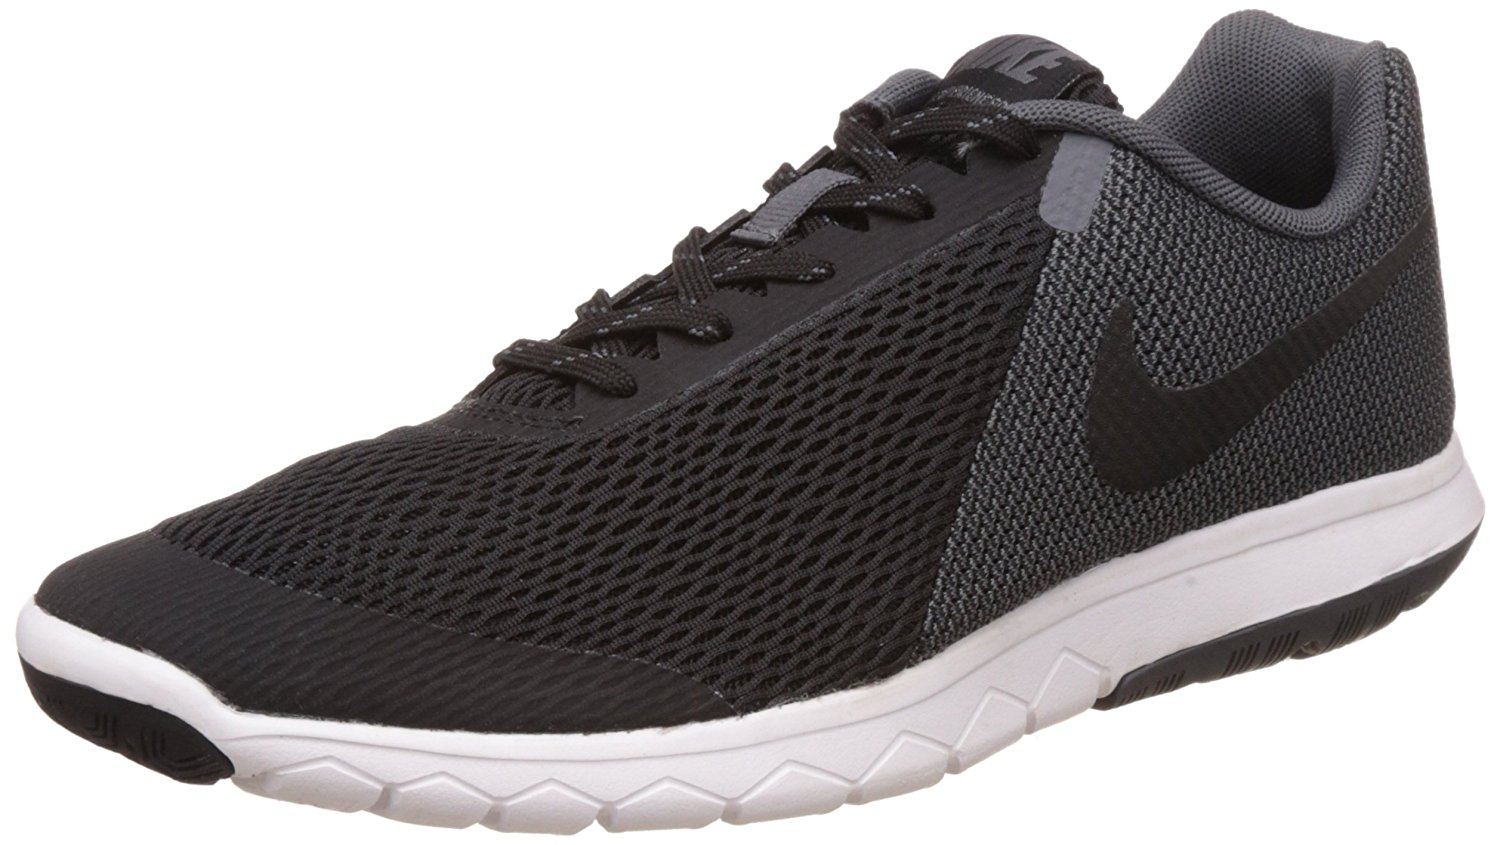 best loved 17a42 06559 Get Quotations · Nike Flex Experience RN 4 Running Shoe